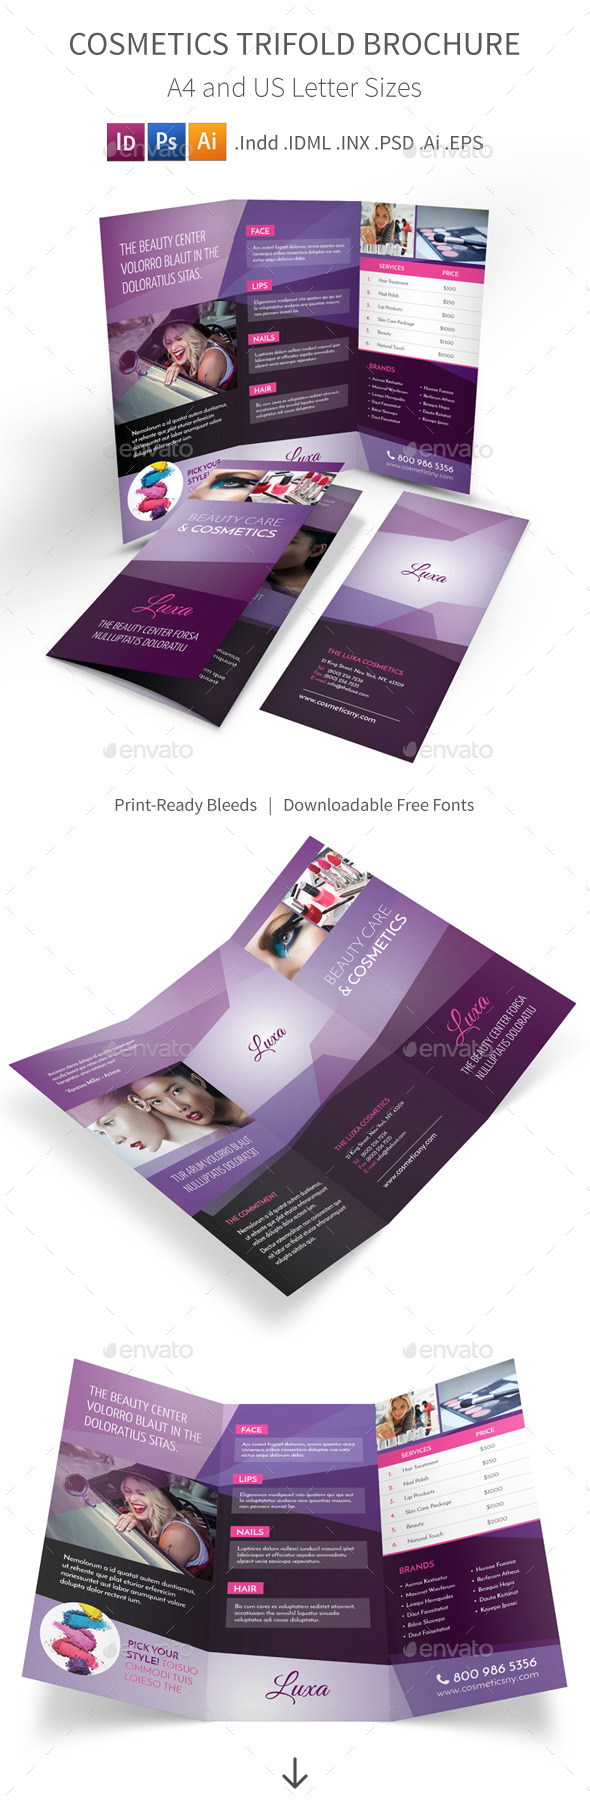 Cosmetics Trifold Brochure